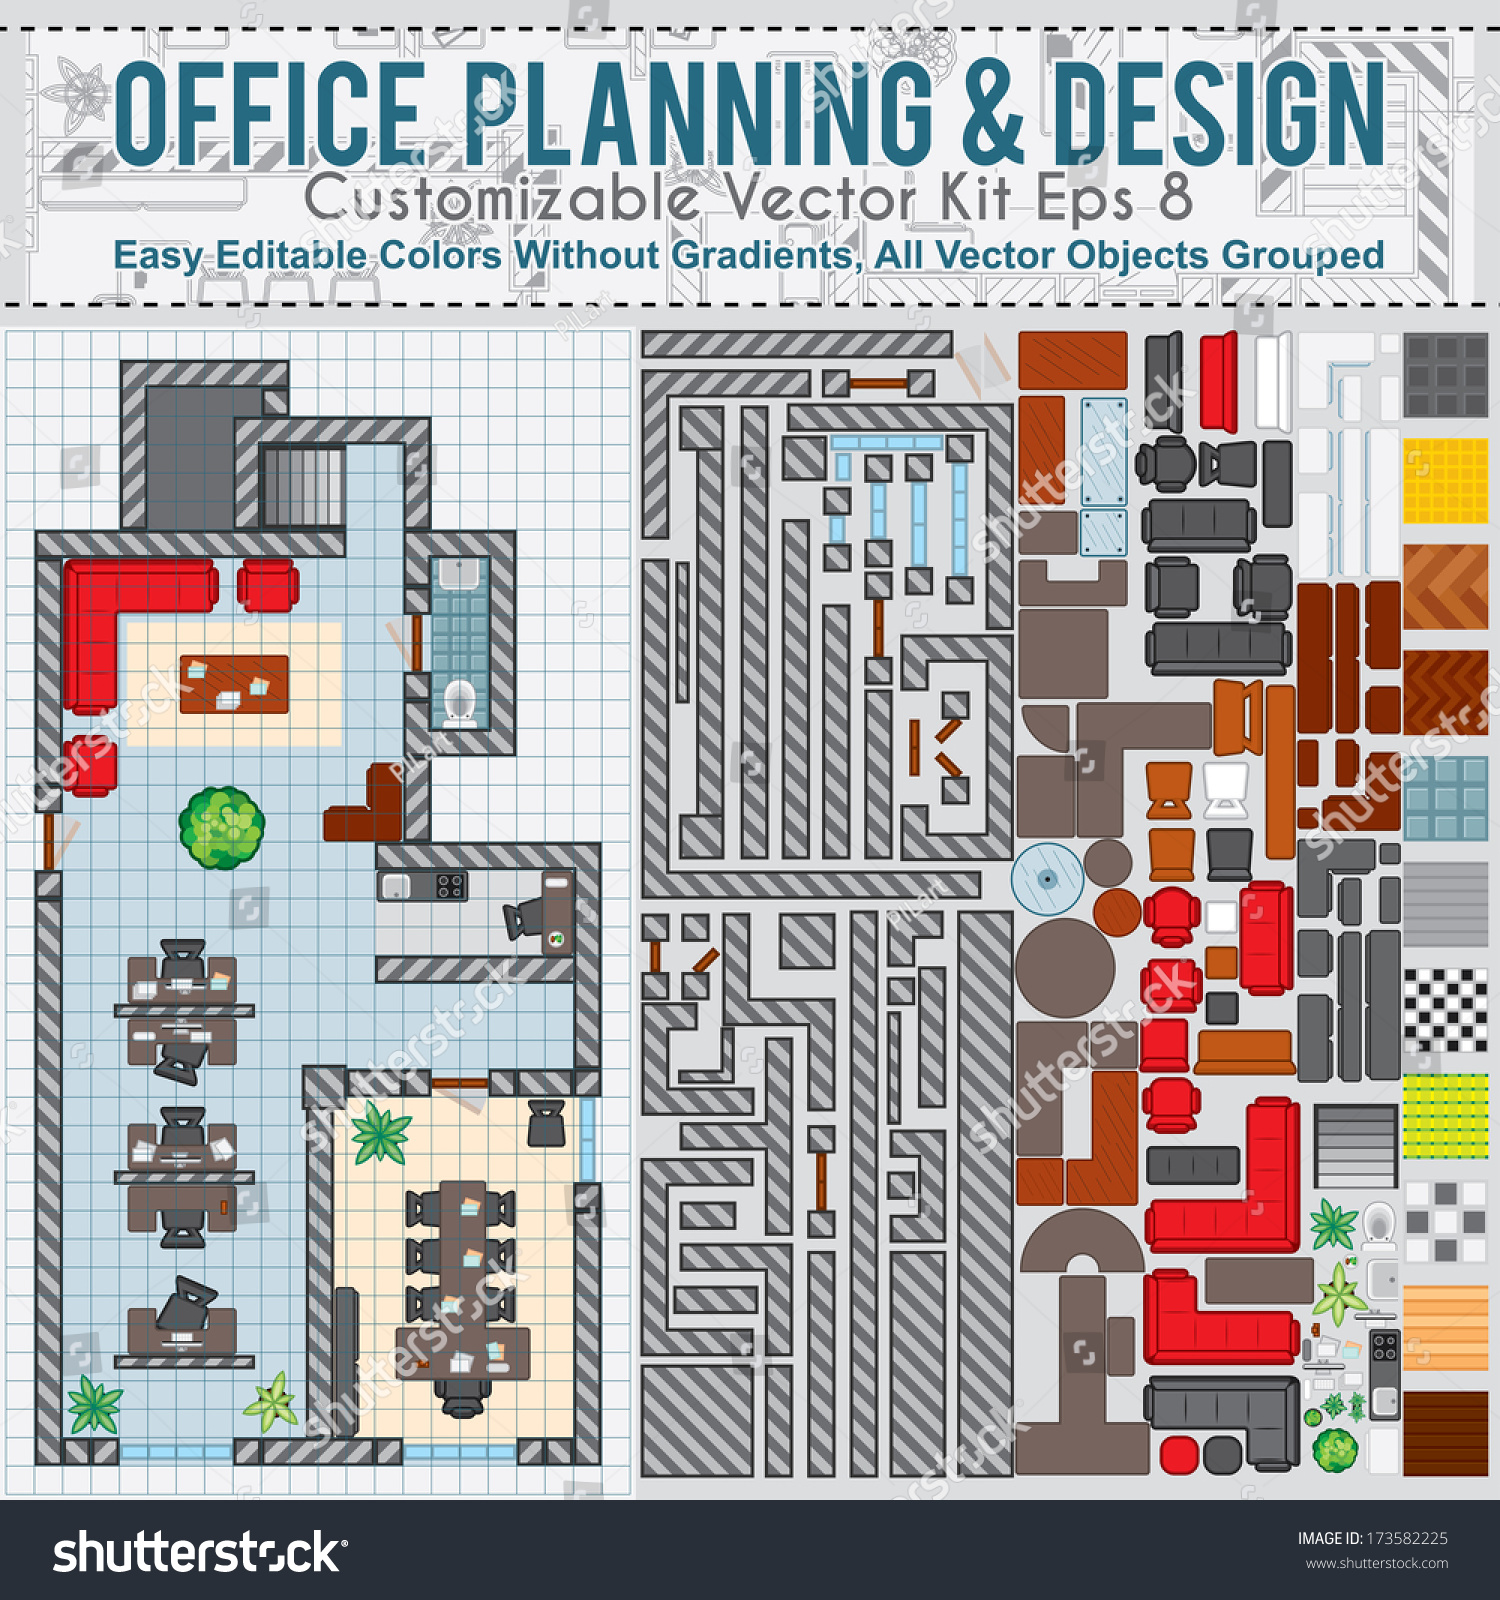 Office Space Planning And Design Vector Kit Contains